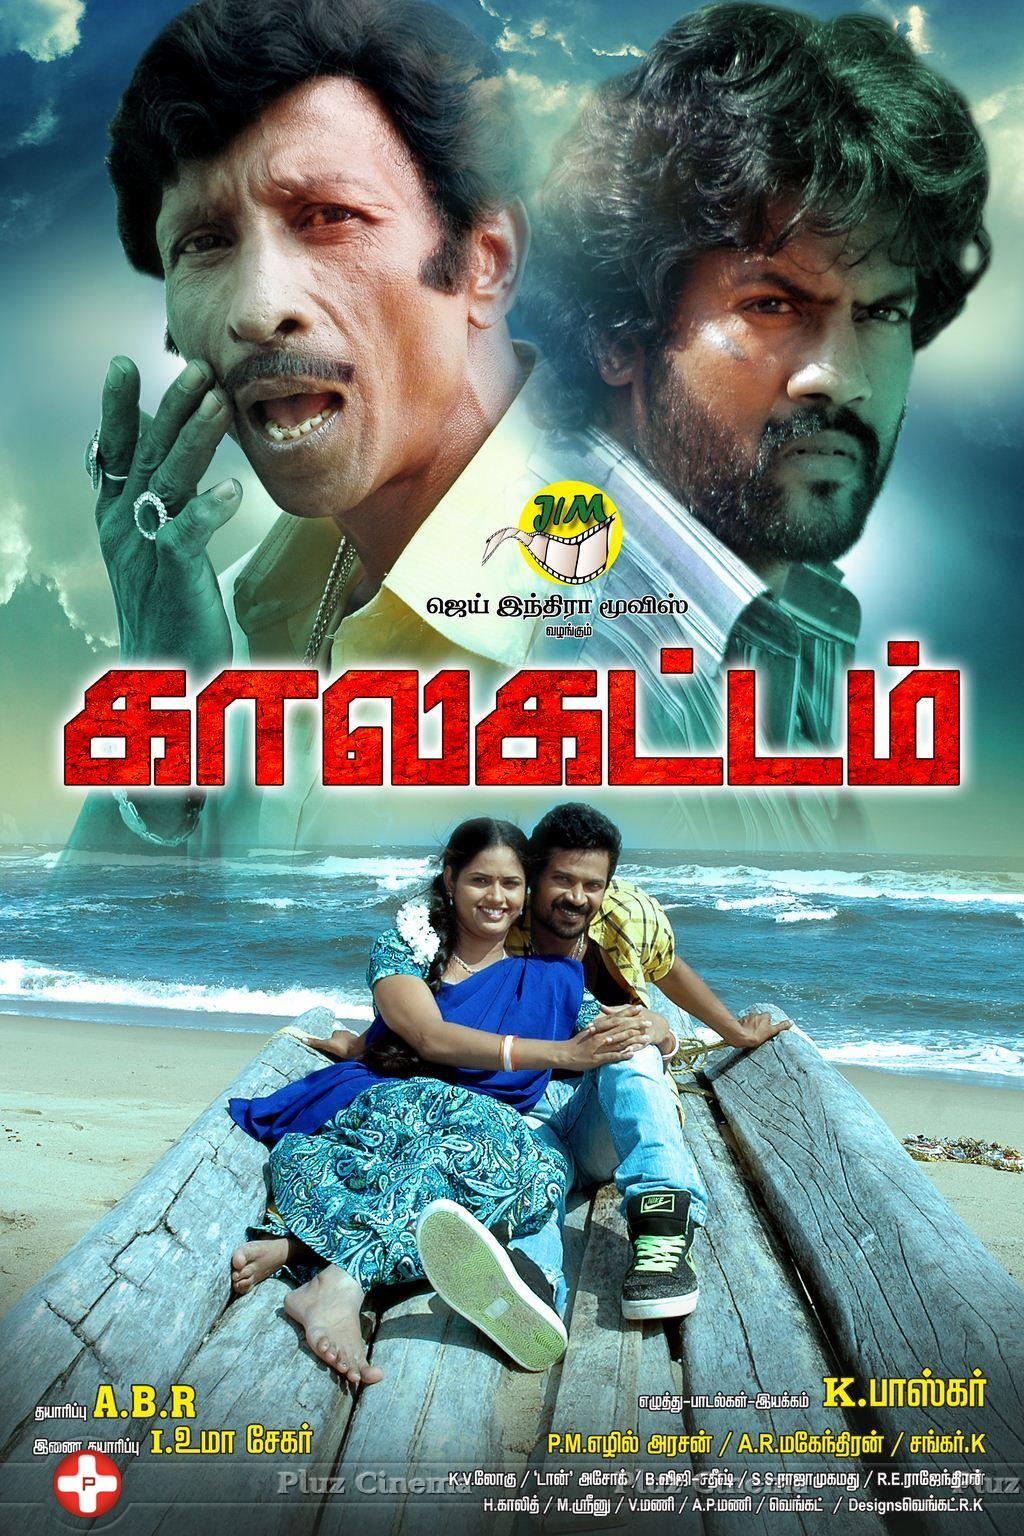 Kaala Kattam Aka Kaalakattam Movie Review Tamil